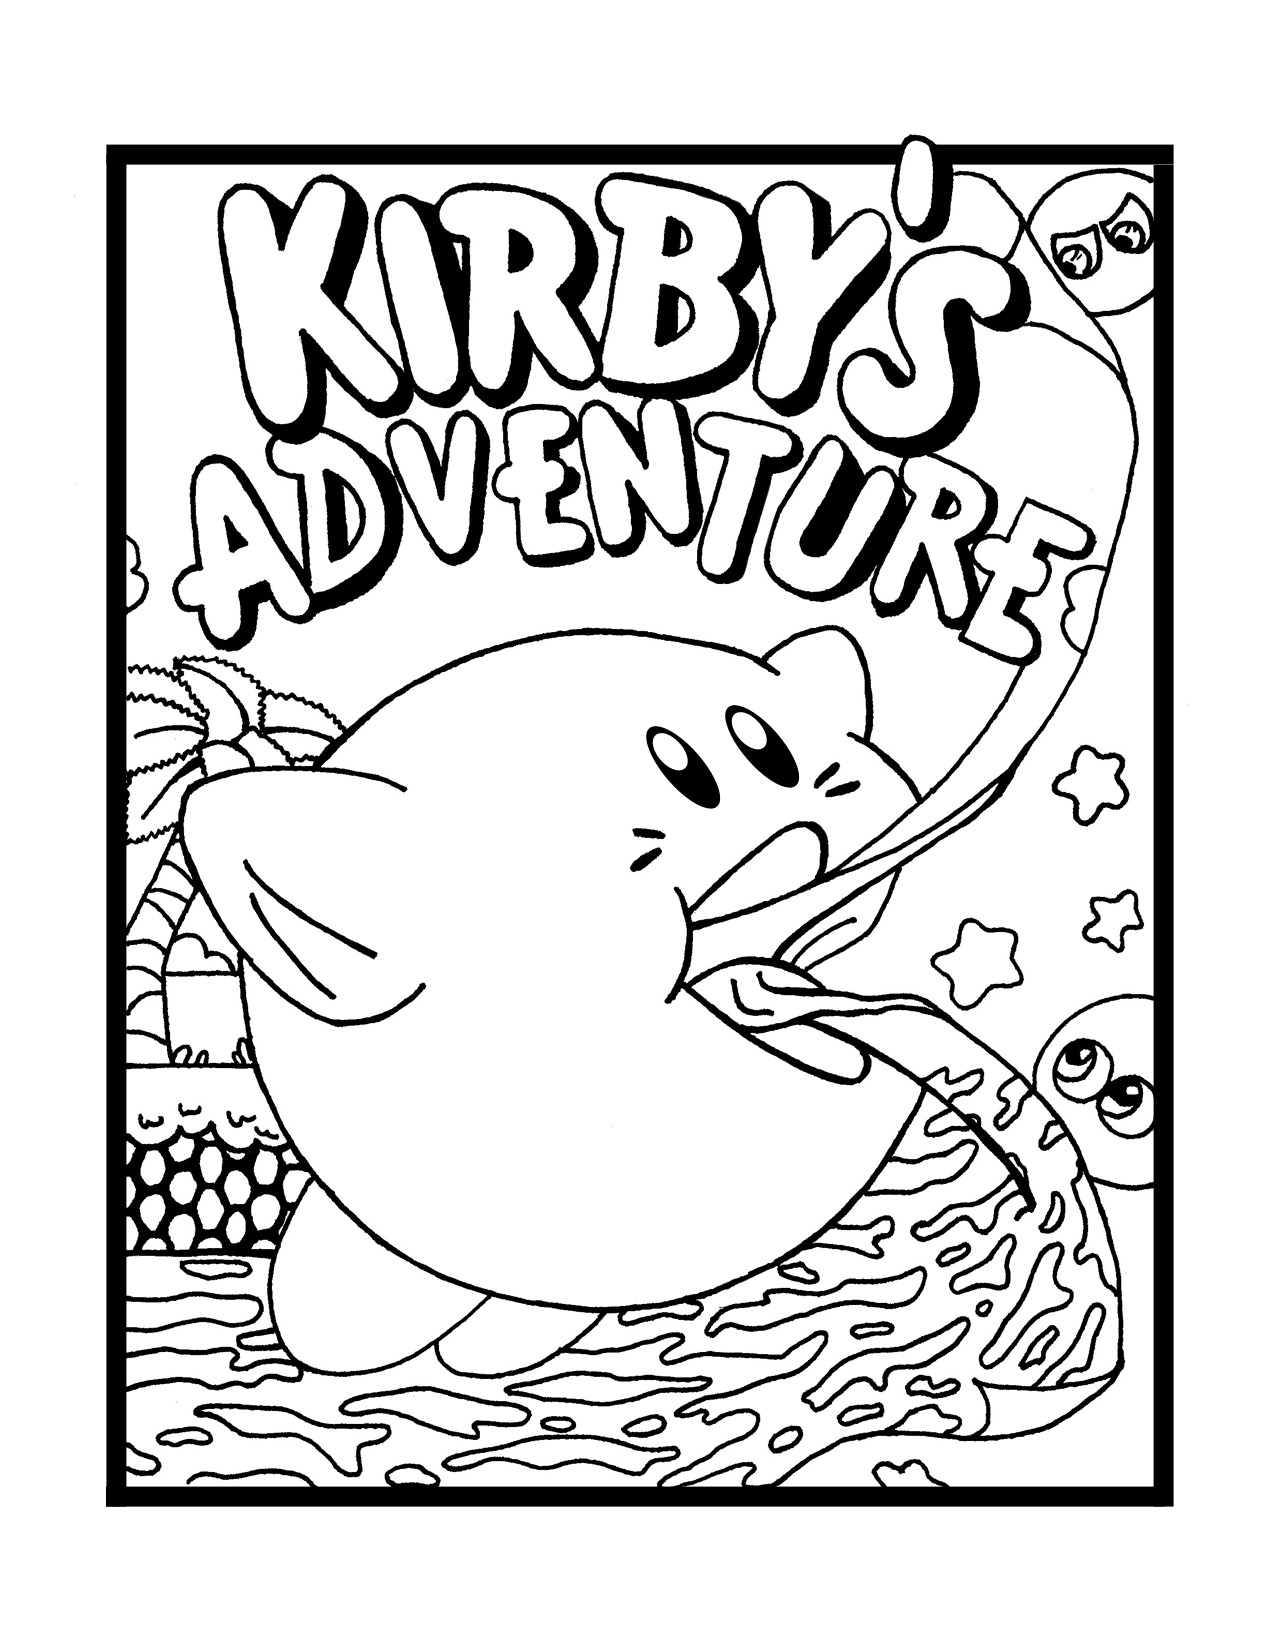 Kirby coloring pages to download and print for free for Cute kirby coloring pages